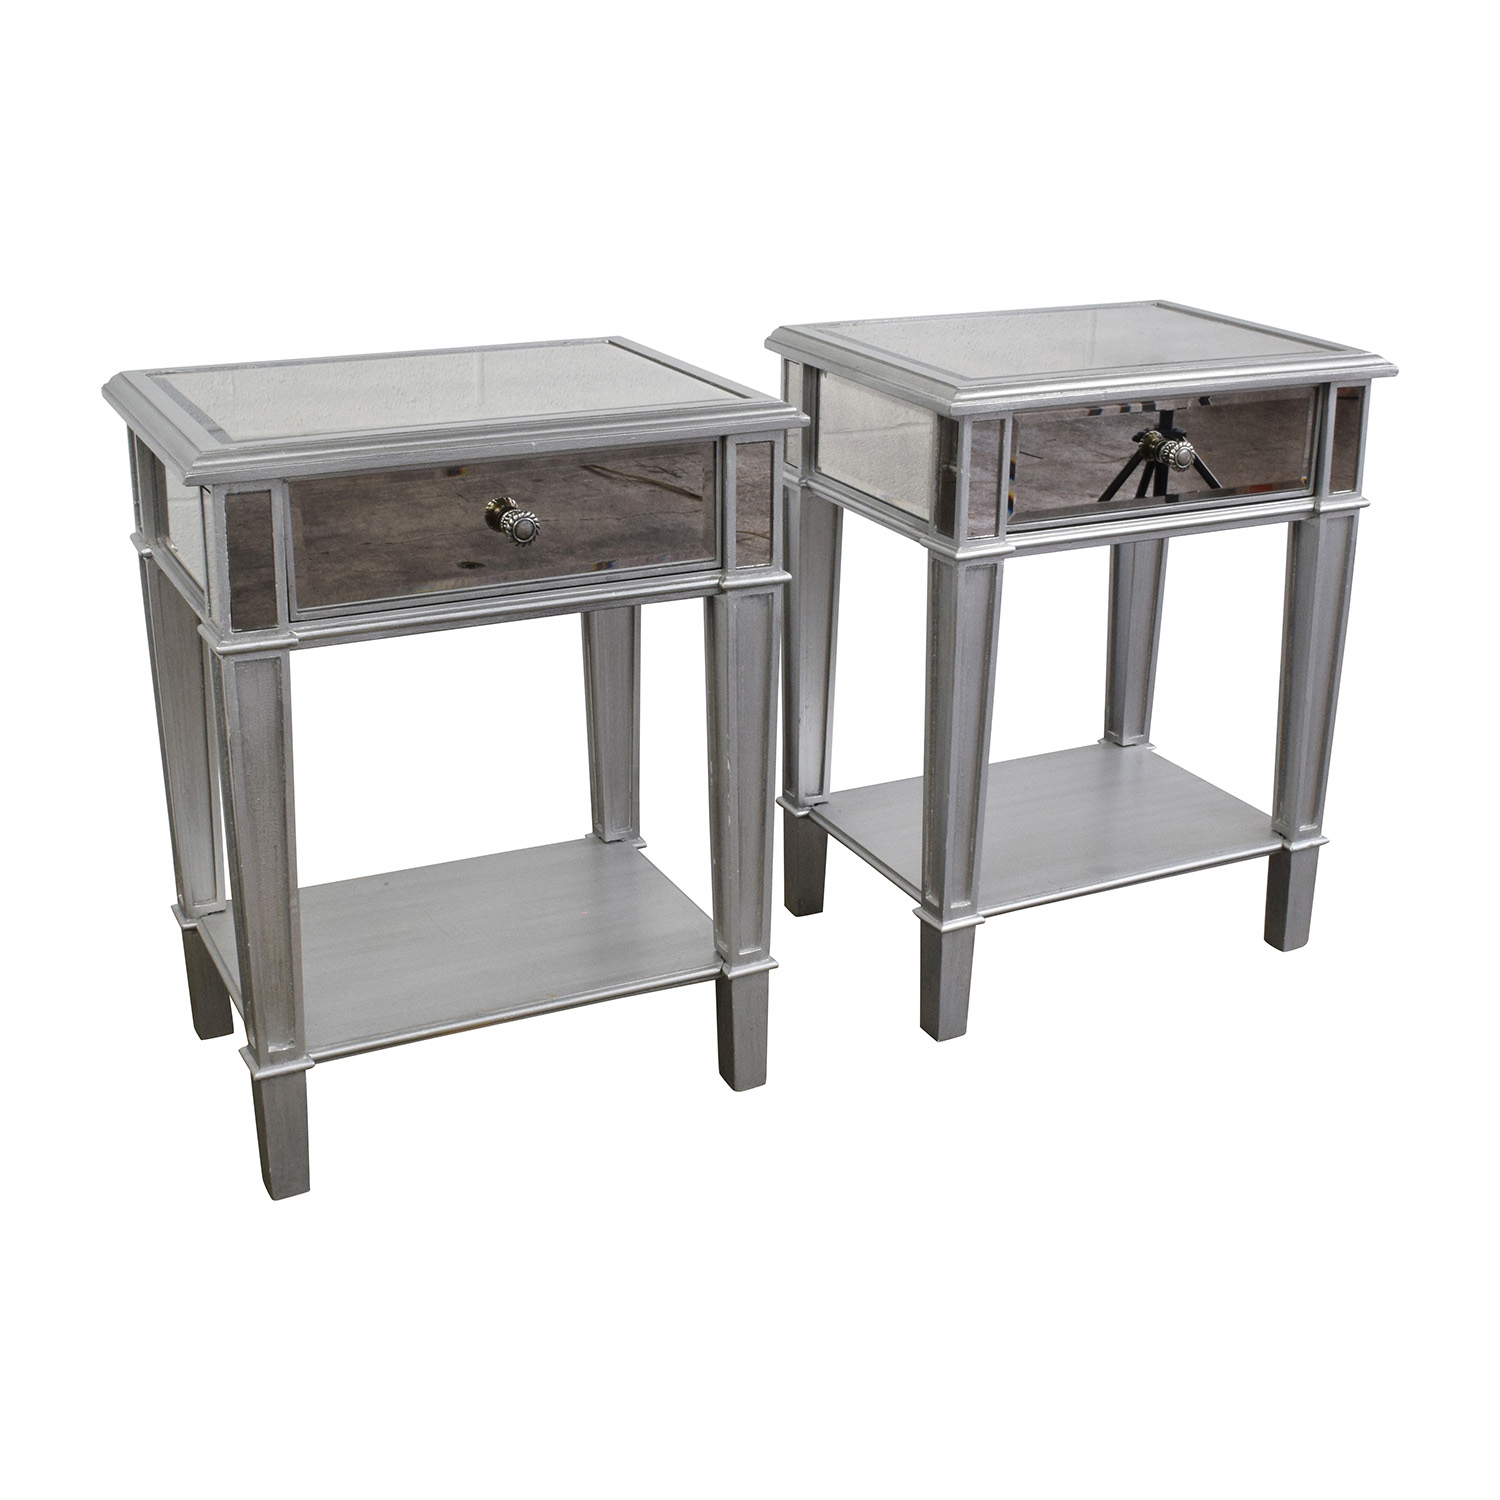 Mirrored Nightstands Modern Mirrored Nightstands With